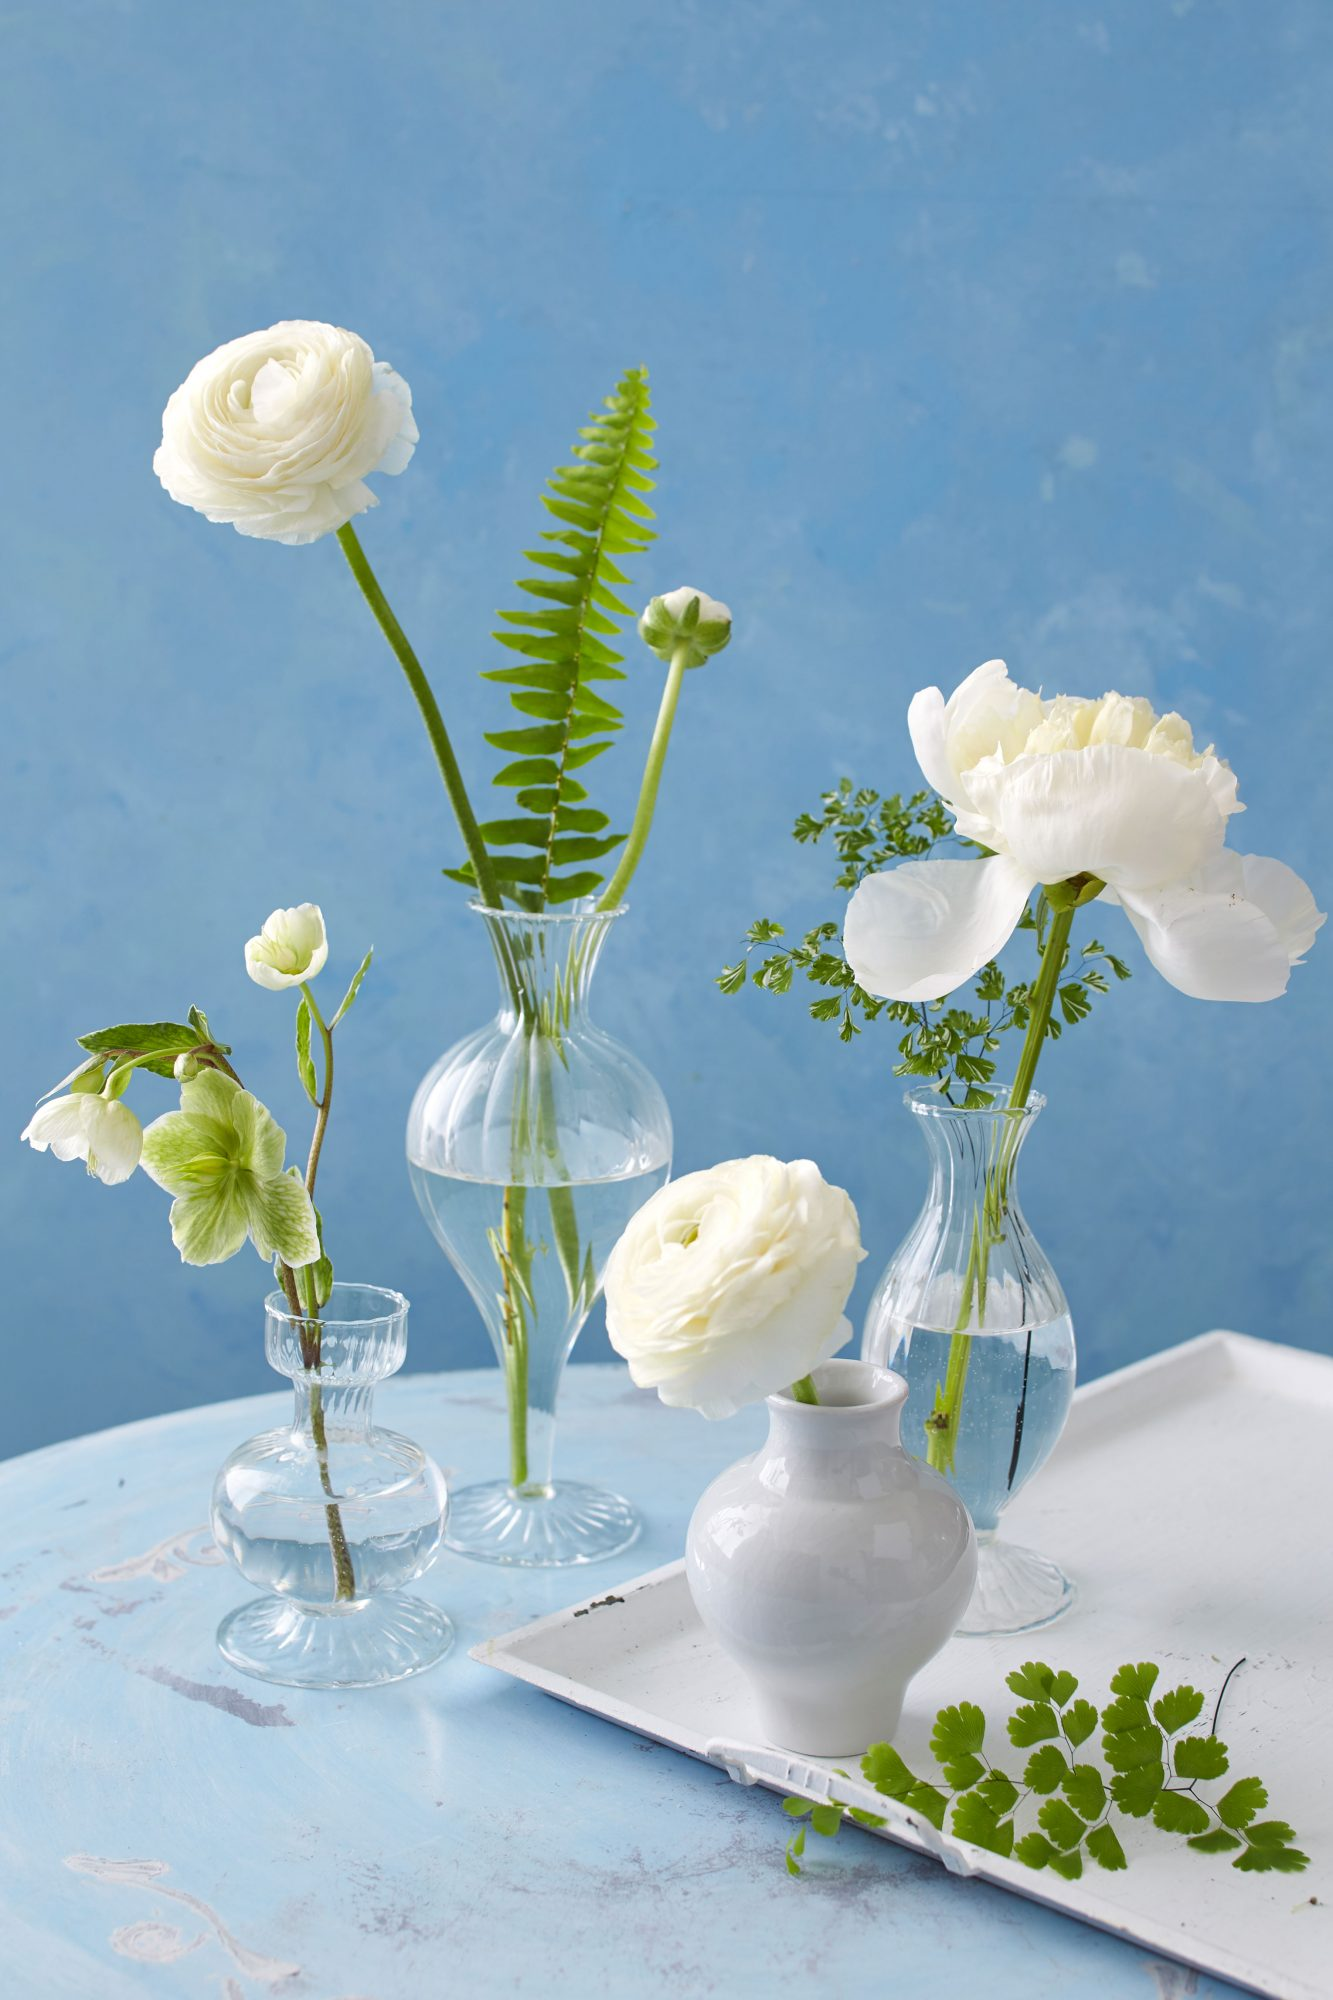 Clear and White Bud Vase Grouping with White Flowers and Greenery